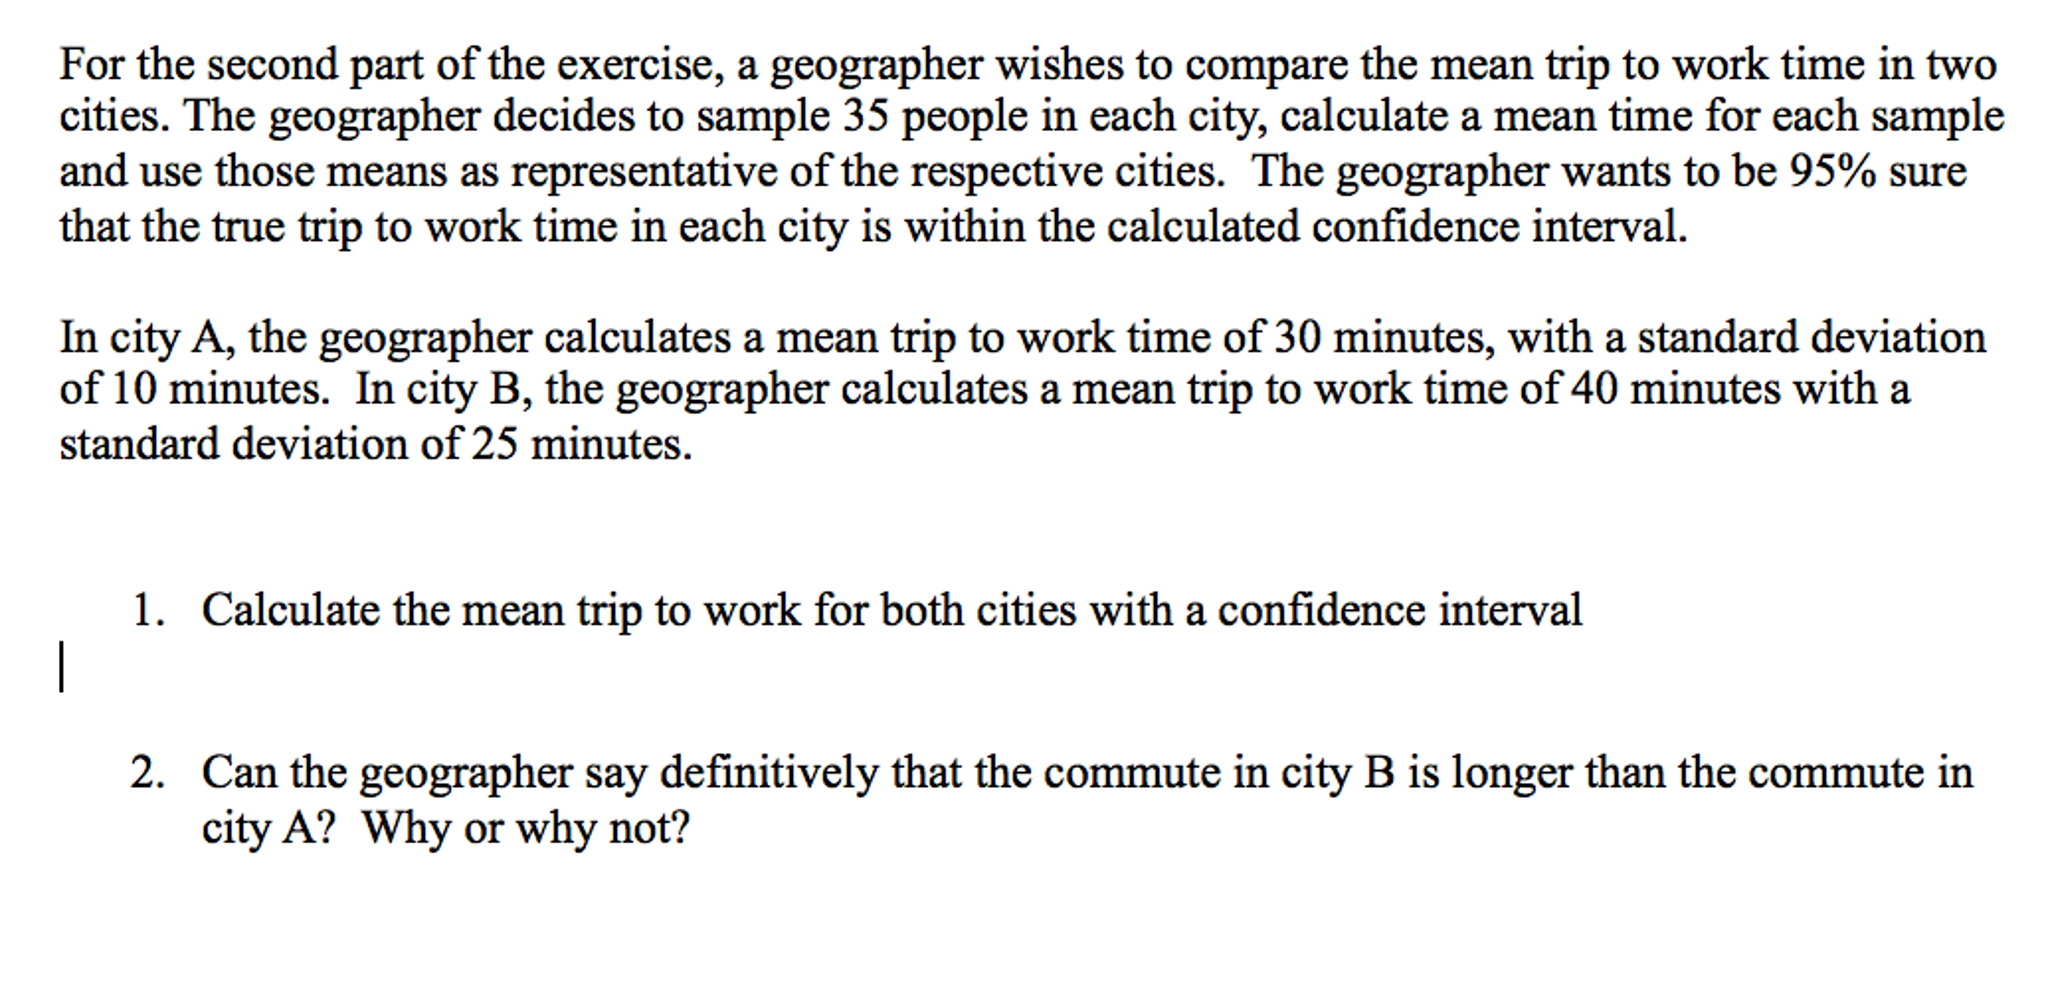 For The Second Part Of The Exercise, A Geographer